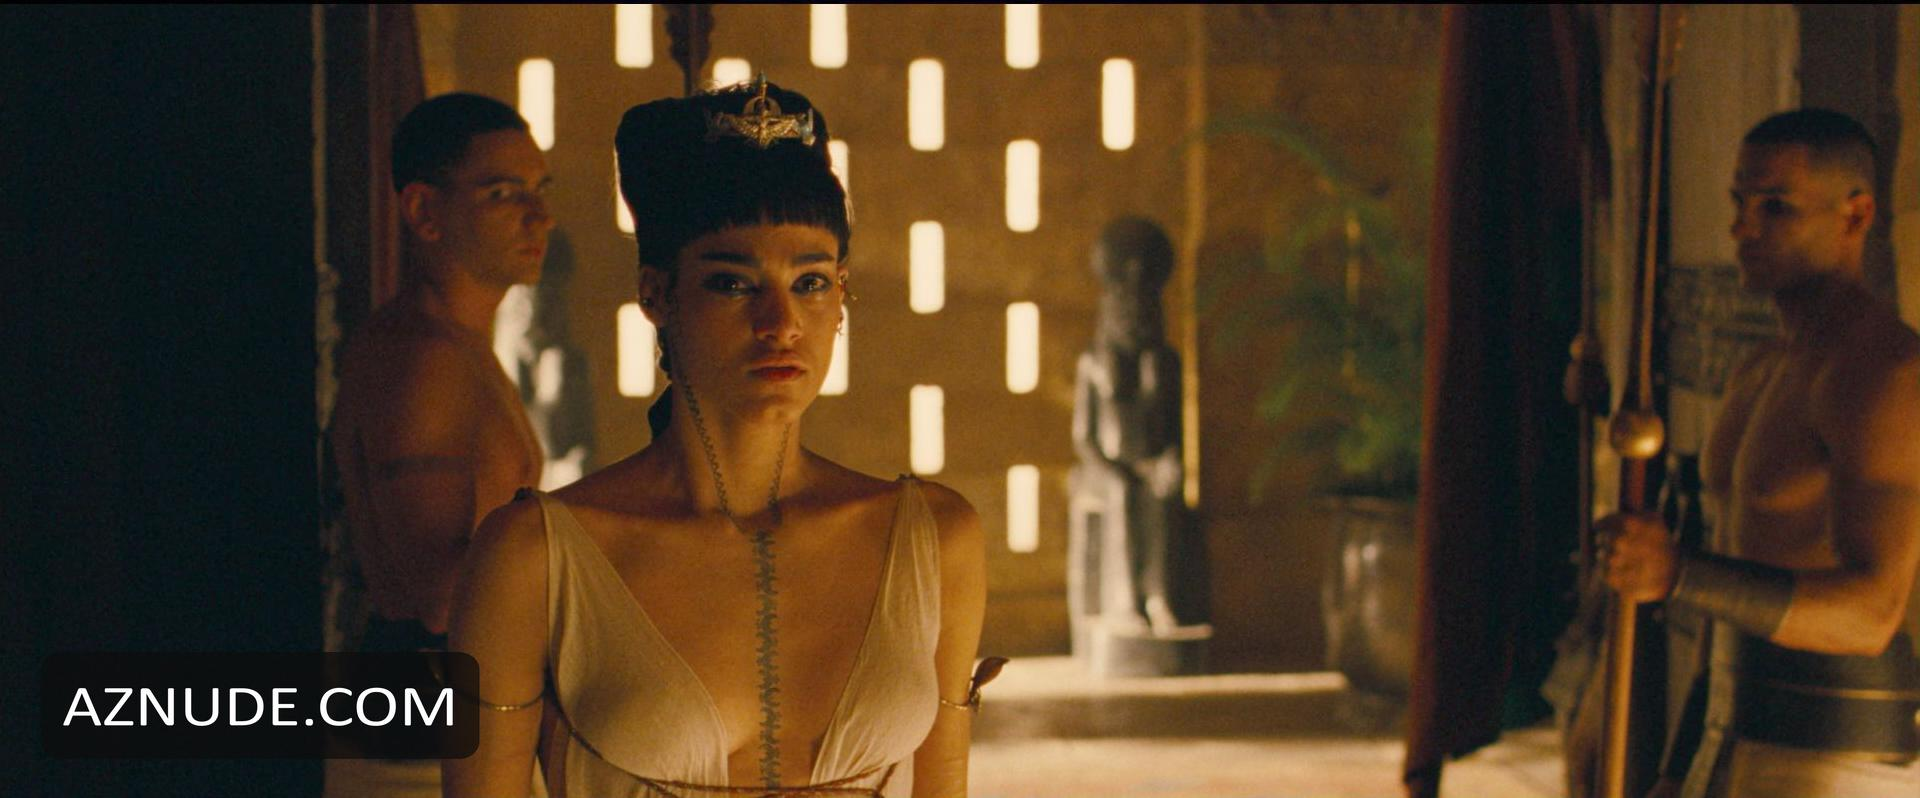 Sorry, that the mummy nude scene can not